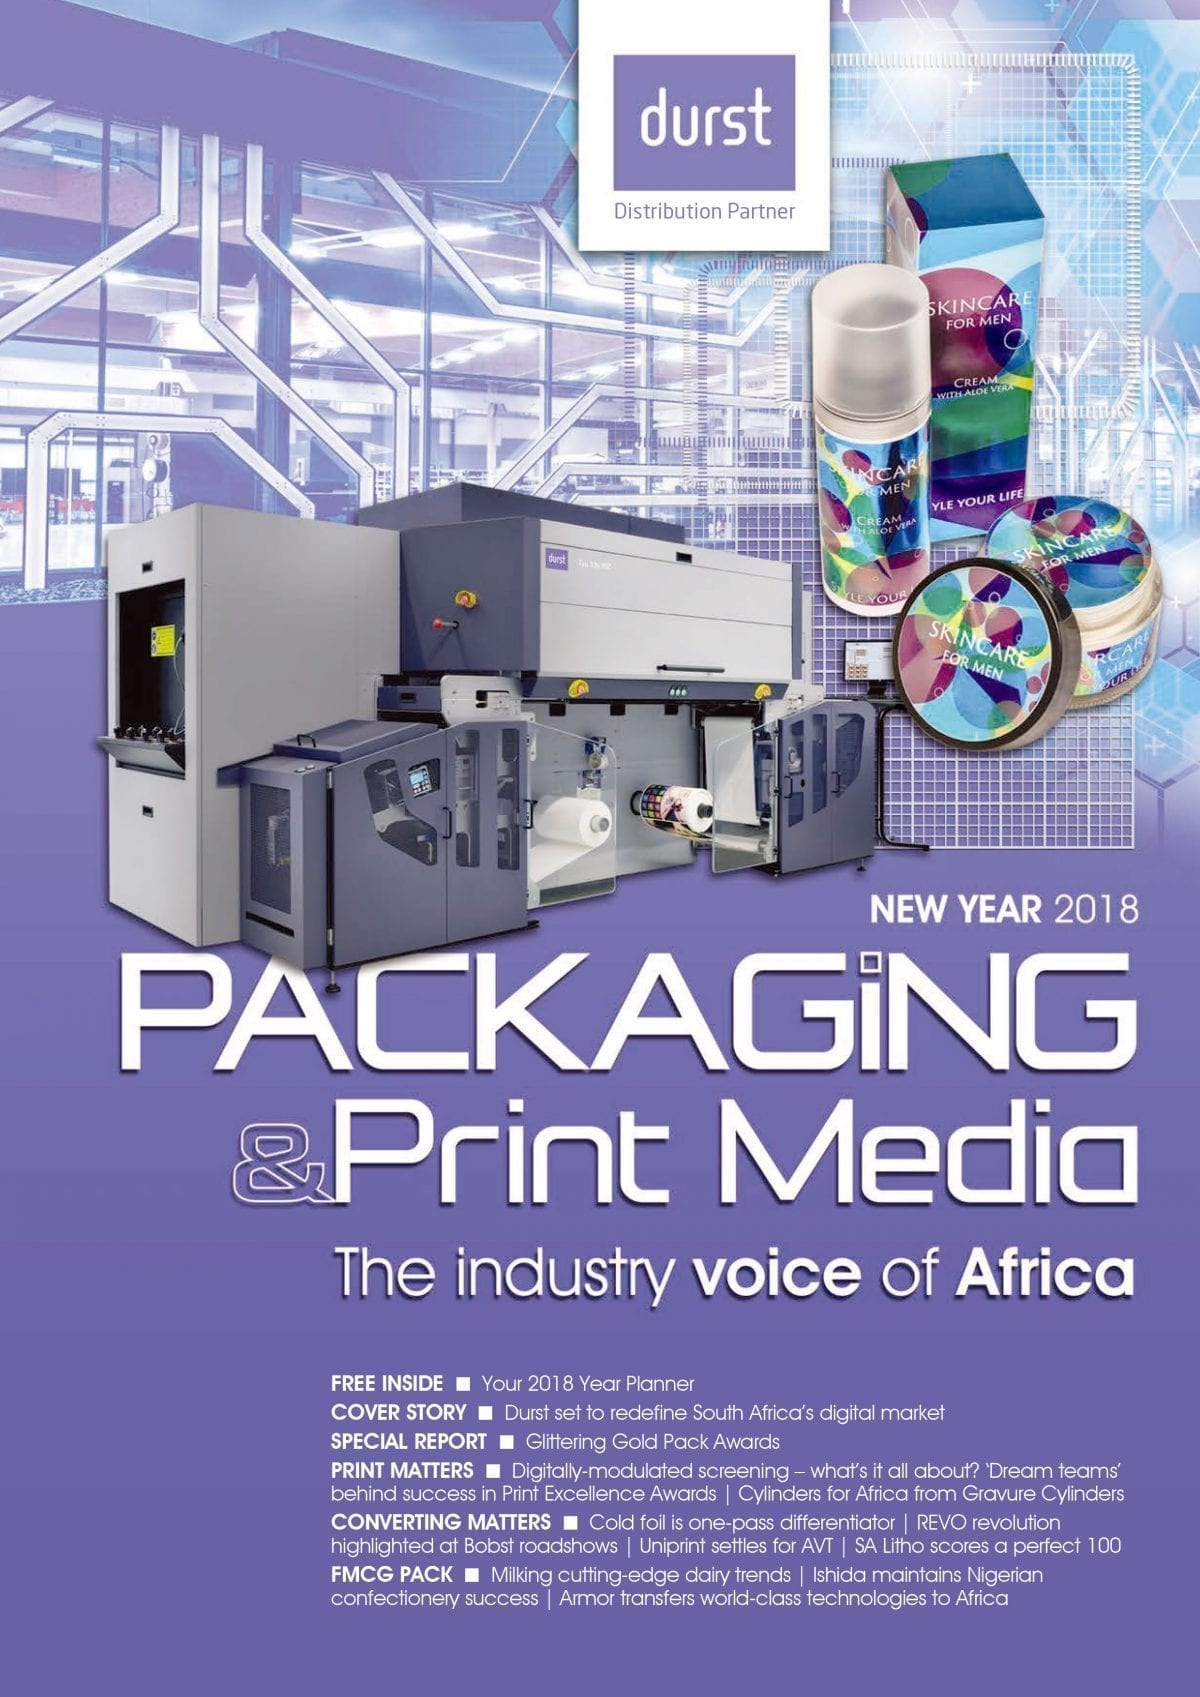 flexographic printing best quality